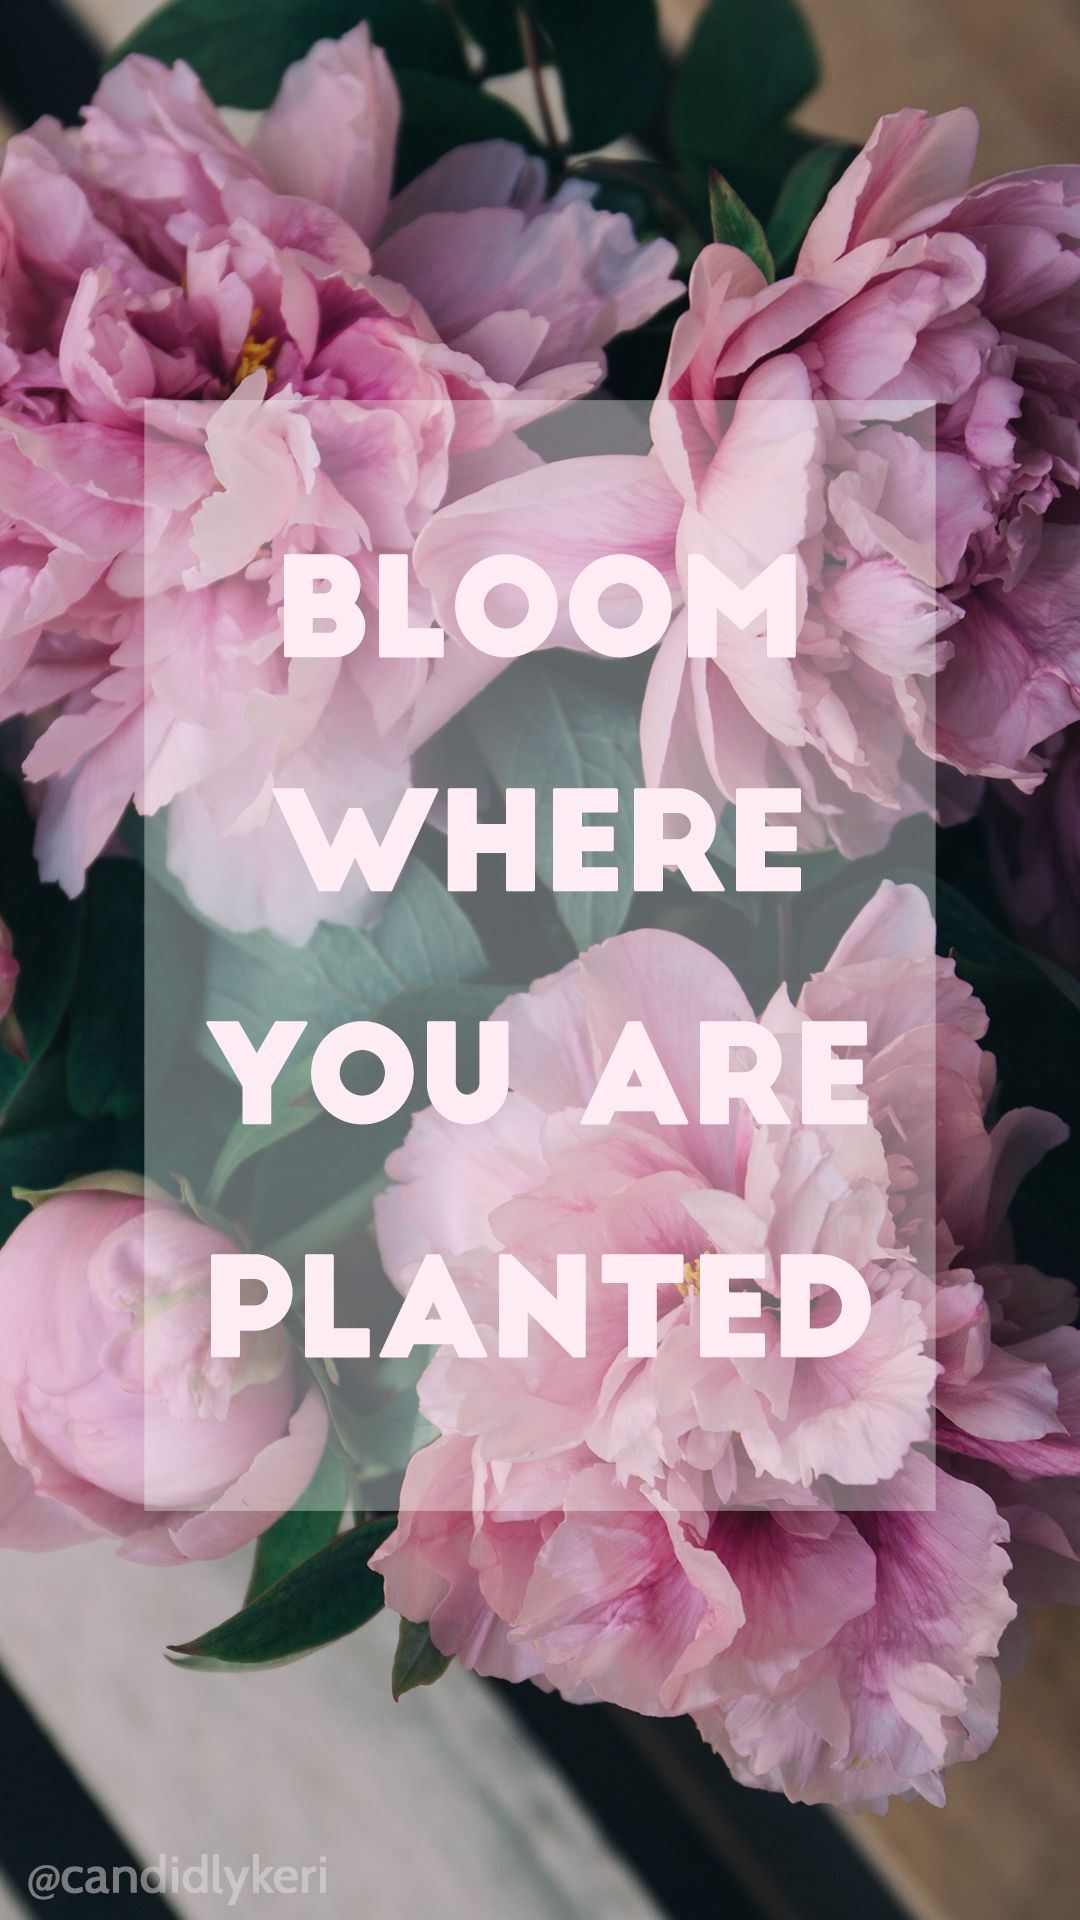 Bloom where you are planted pink flowers quote for wallpaper on bloom where you are planted pink flowers quote for wallpaper on desktop iphone android or mobile for free on the blog mightylinksfo